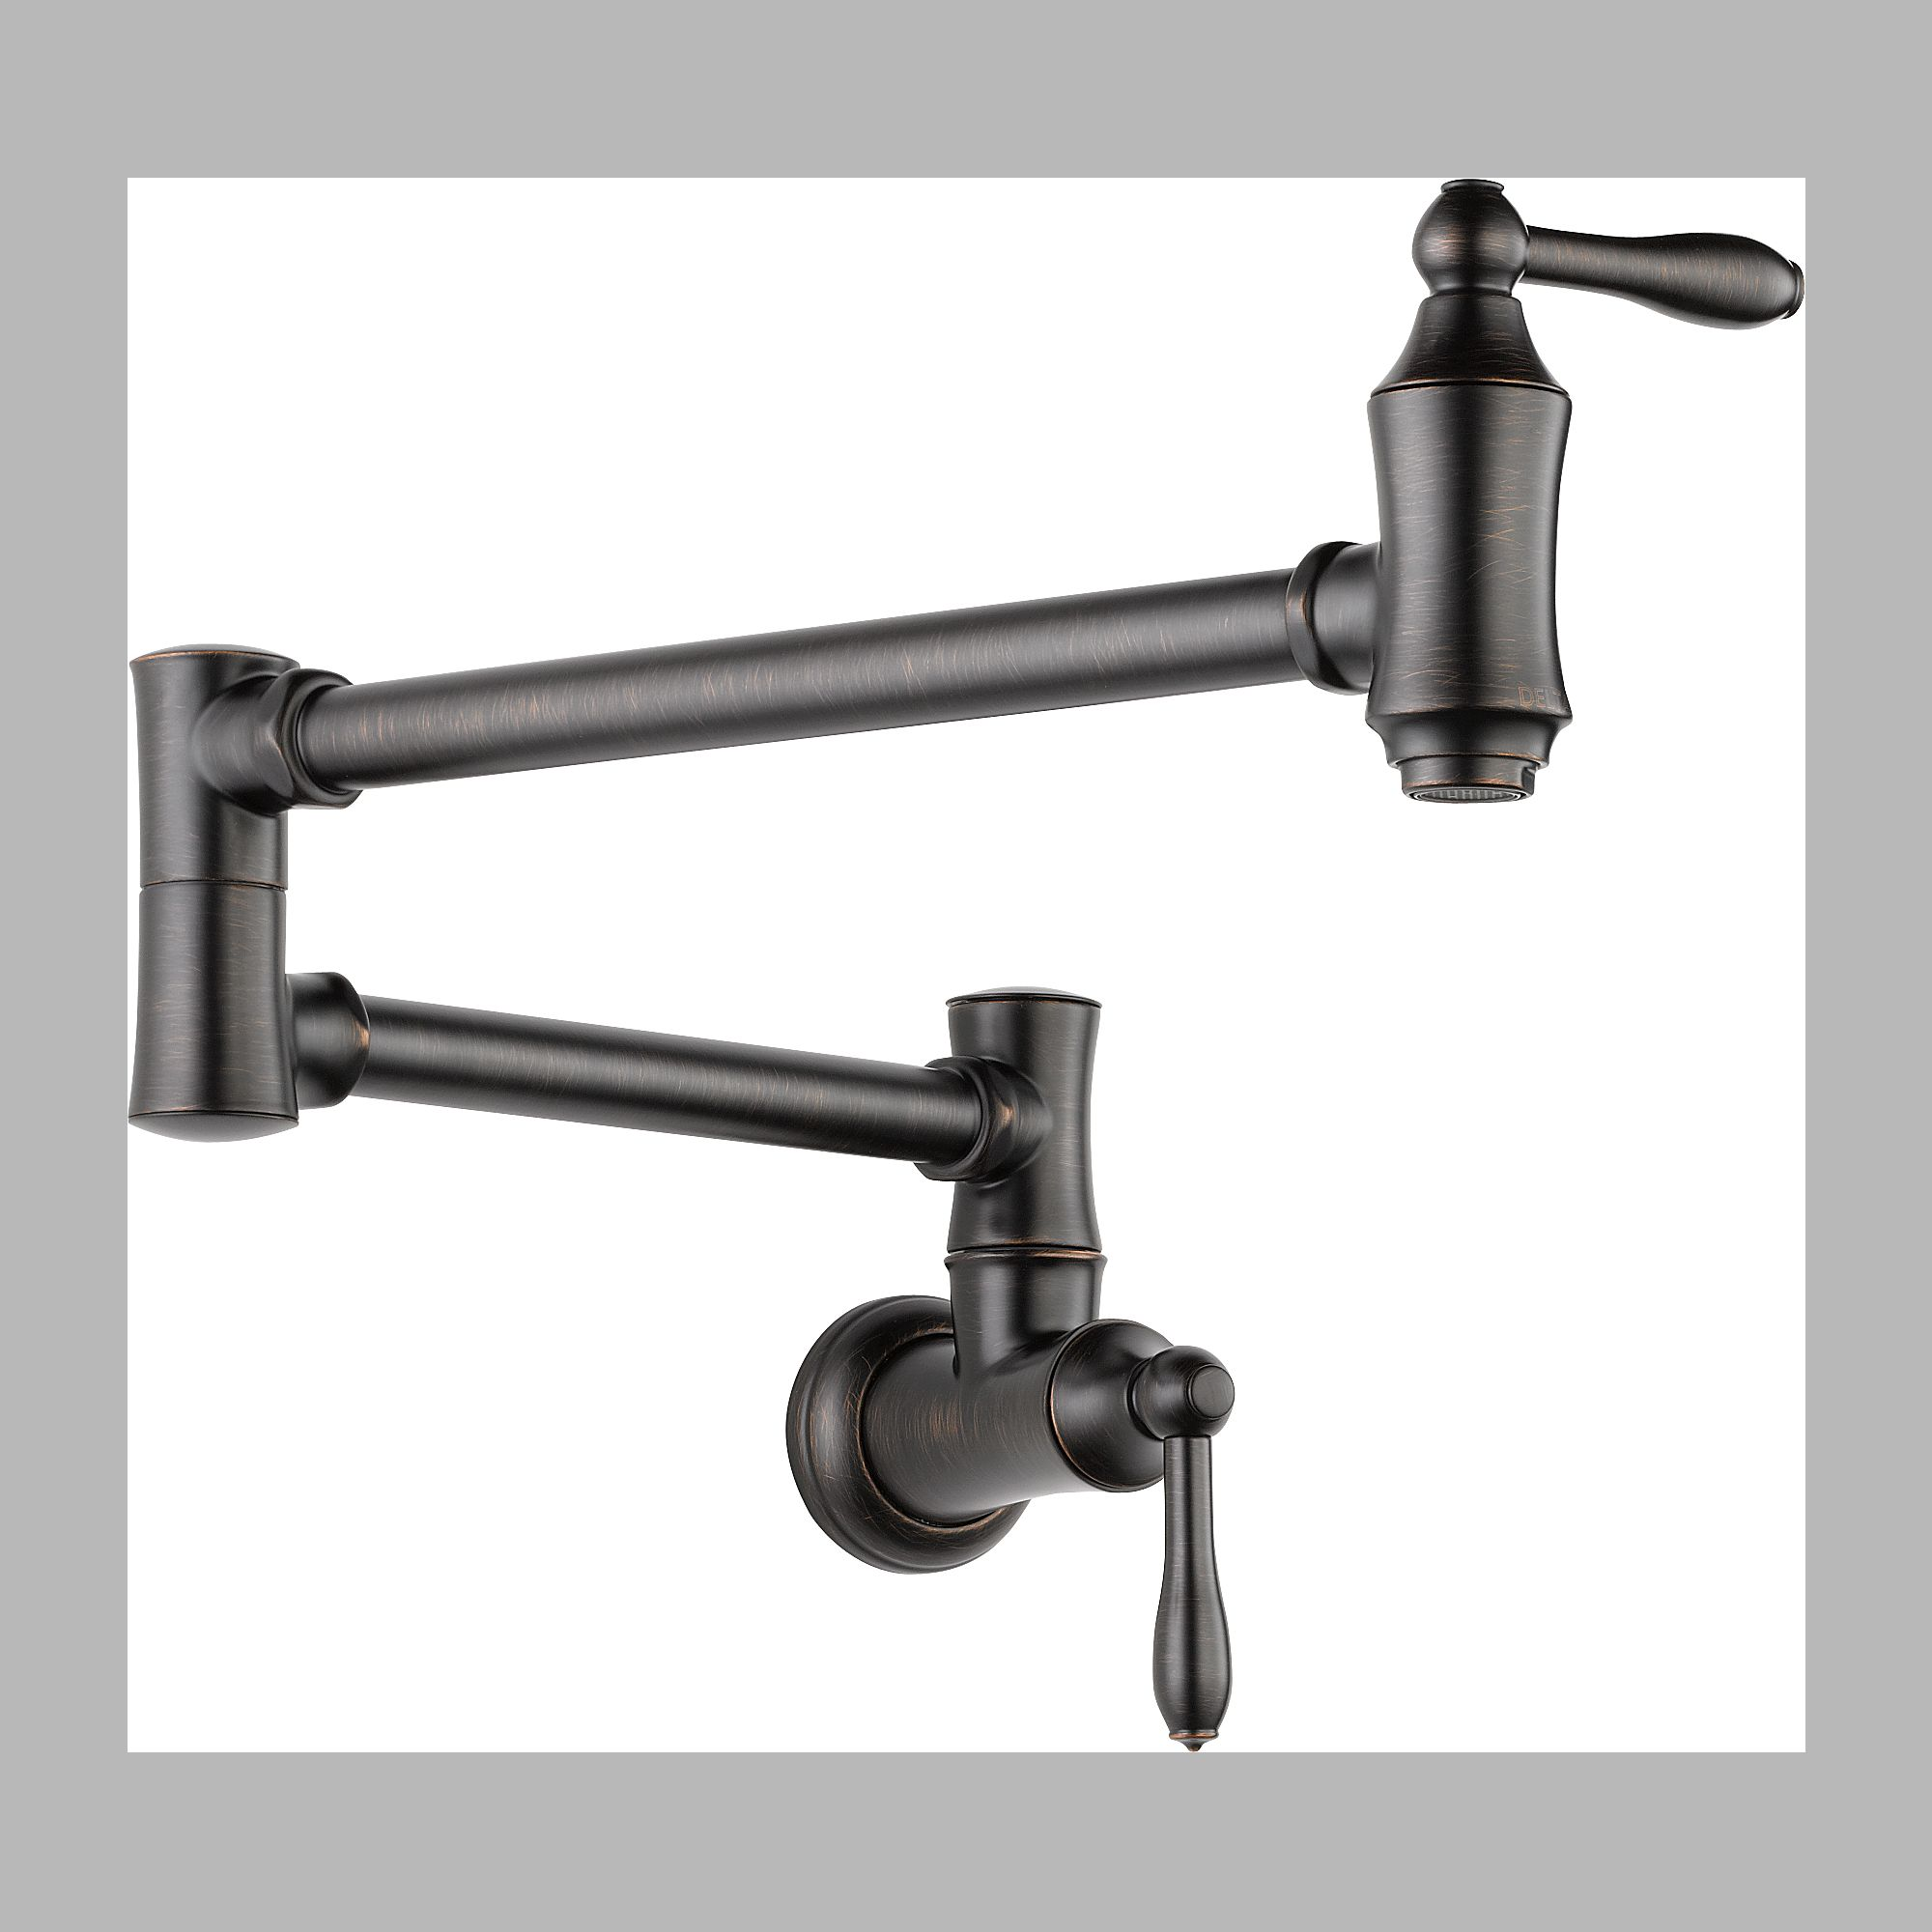 Delta 1177LF-RB Pot Filler Faucet - Wall Mount